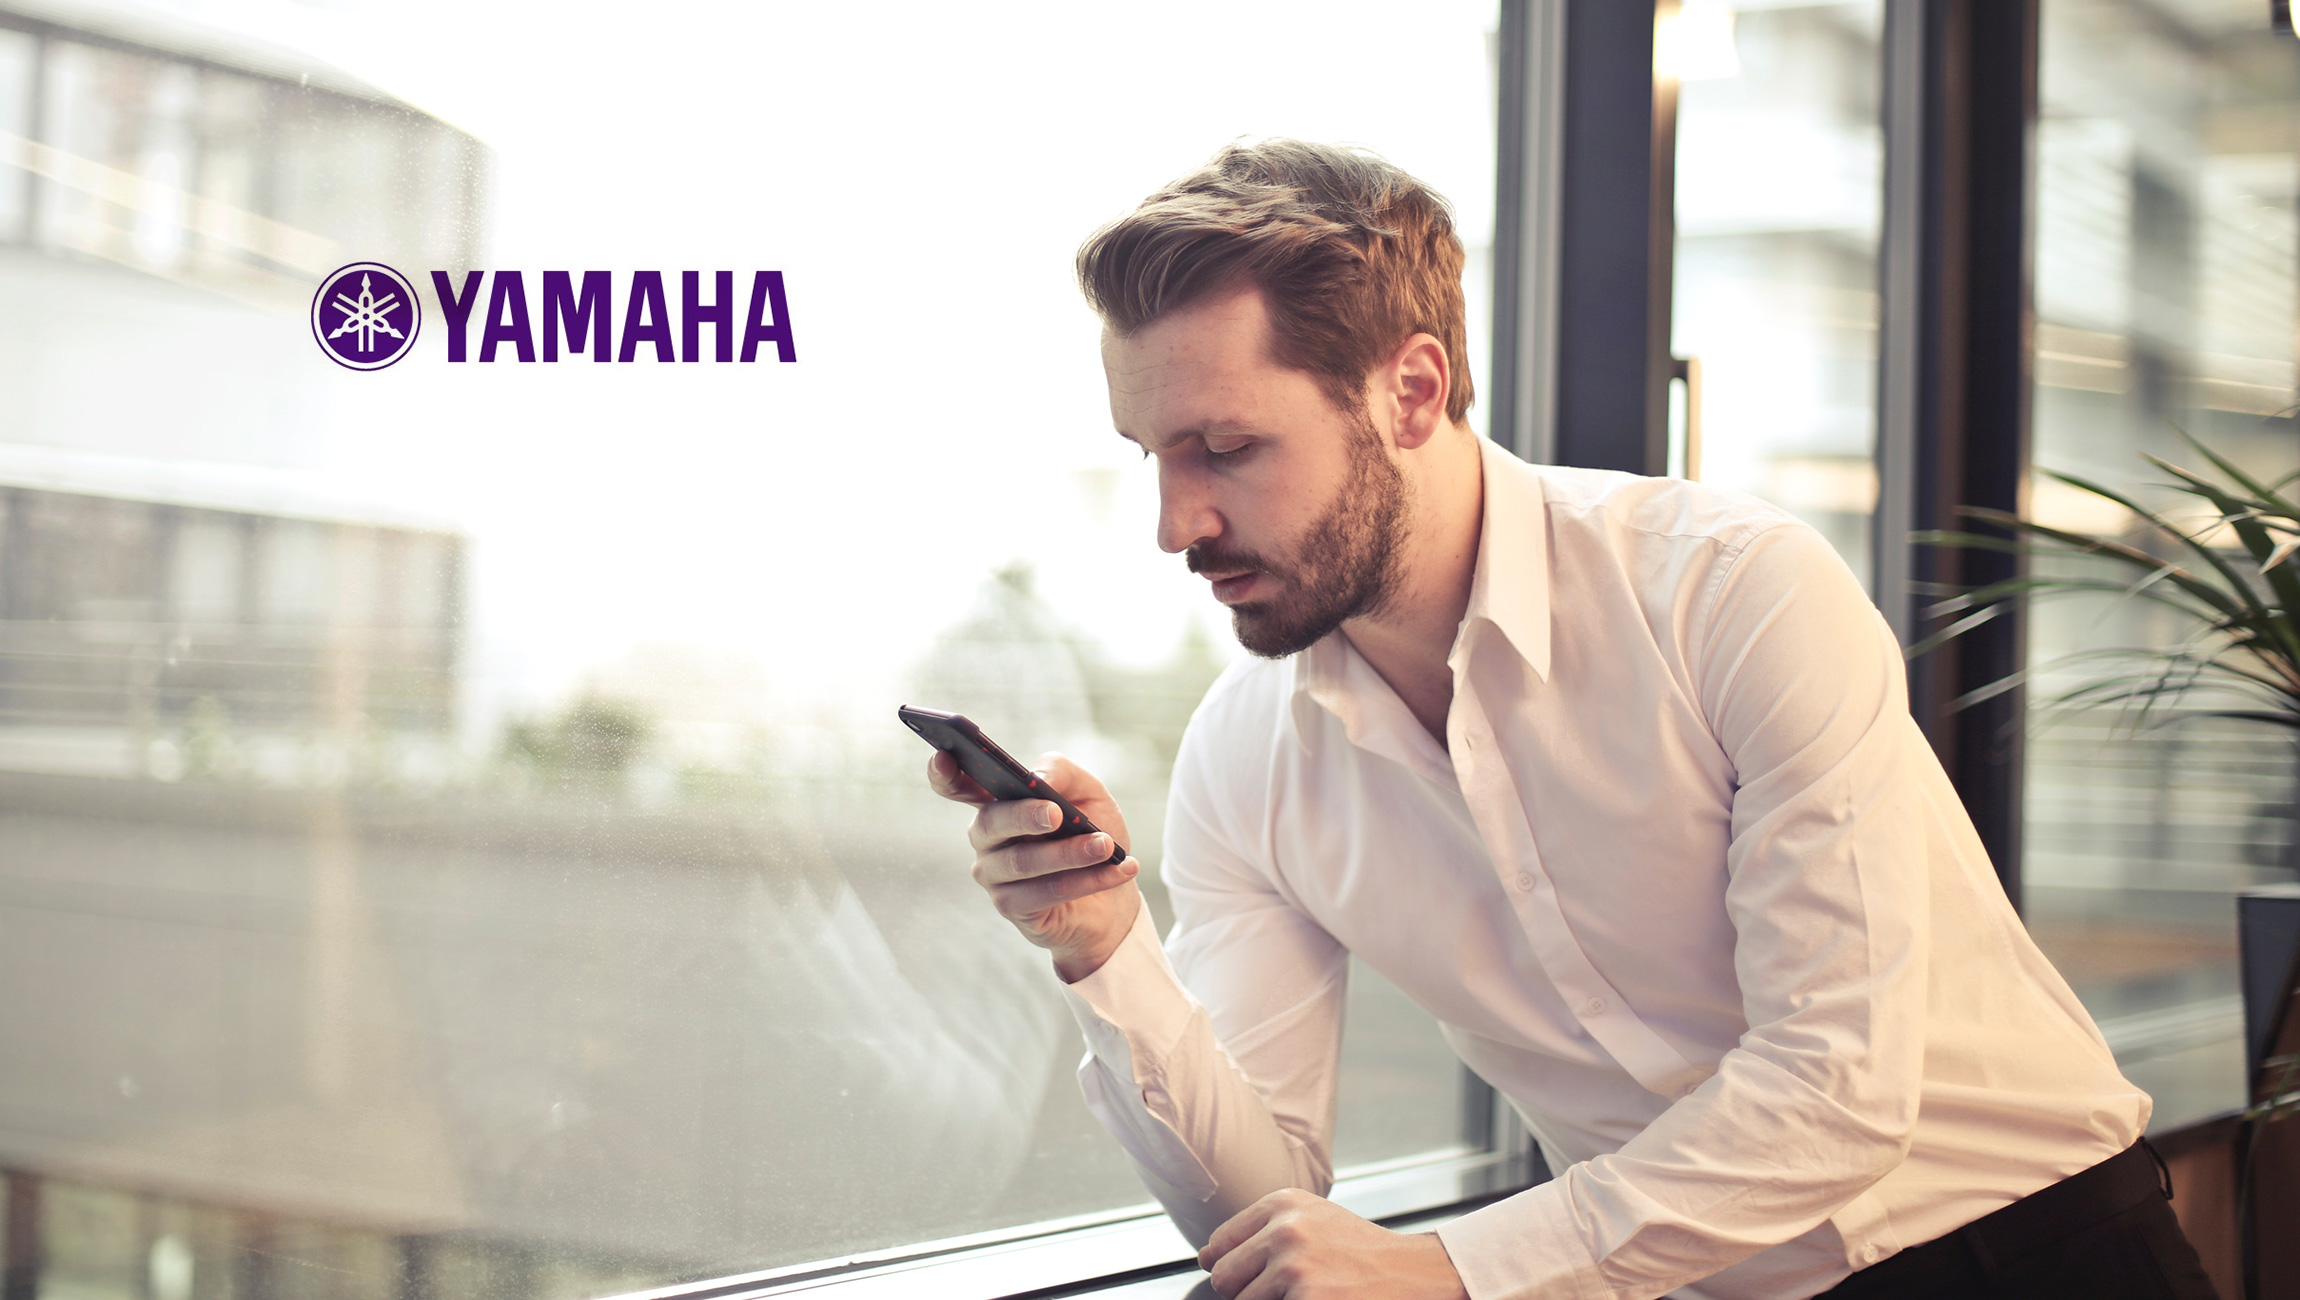 Yamaha Commits to Unified Communications Business in Europe